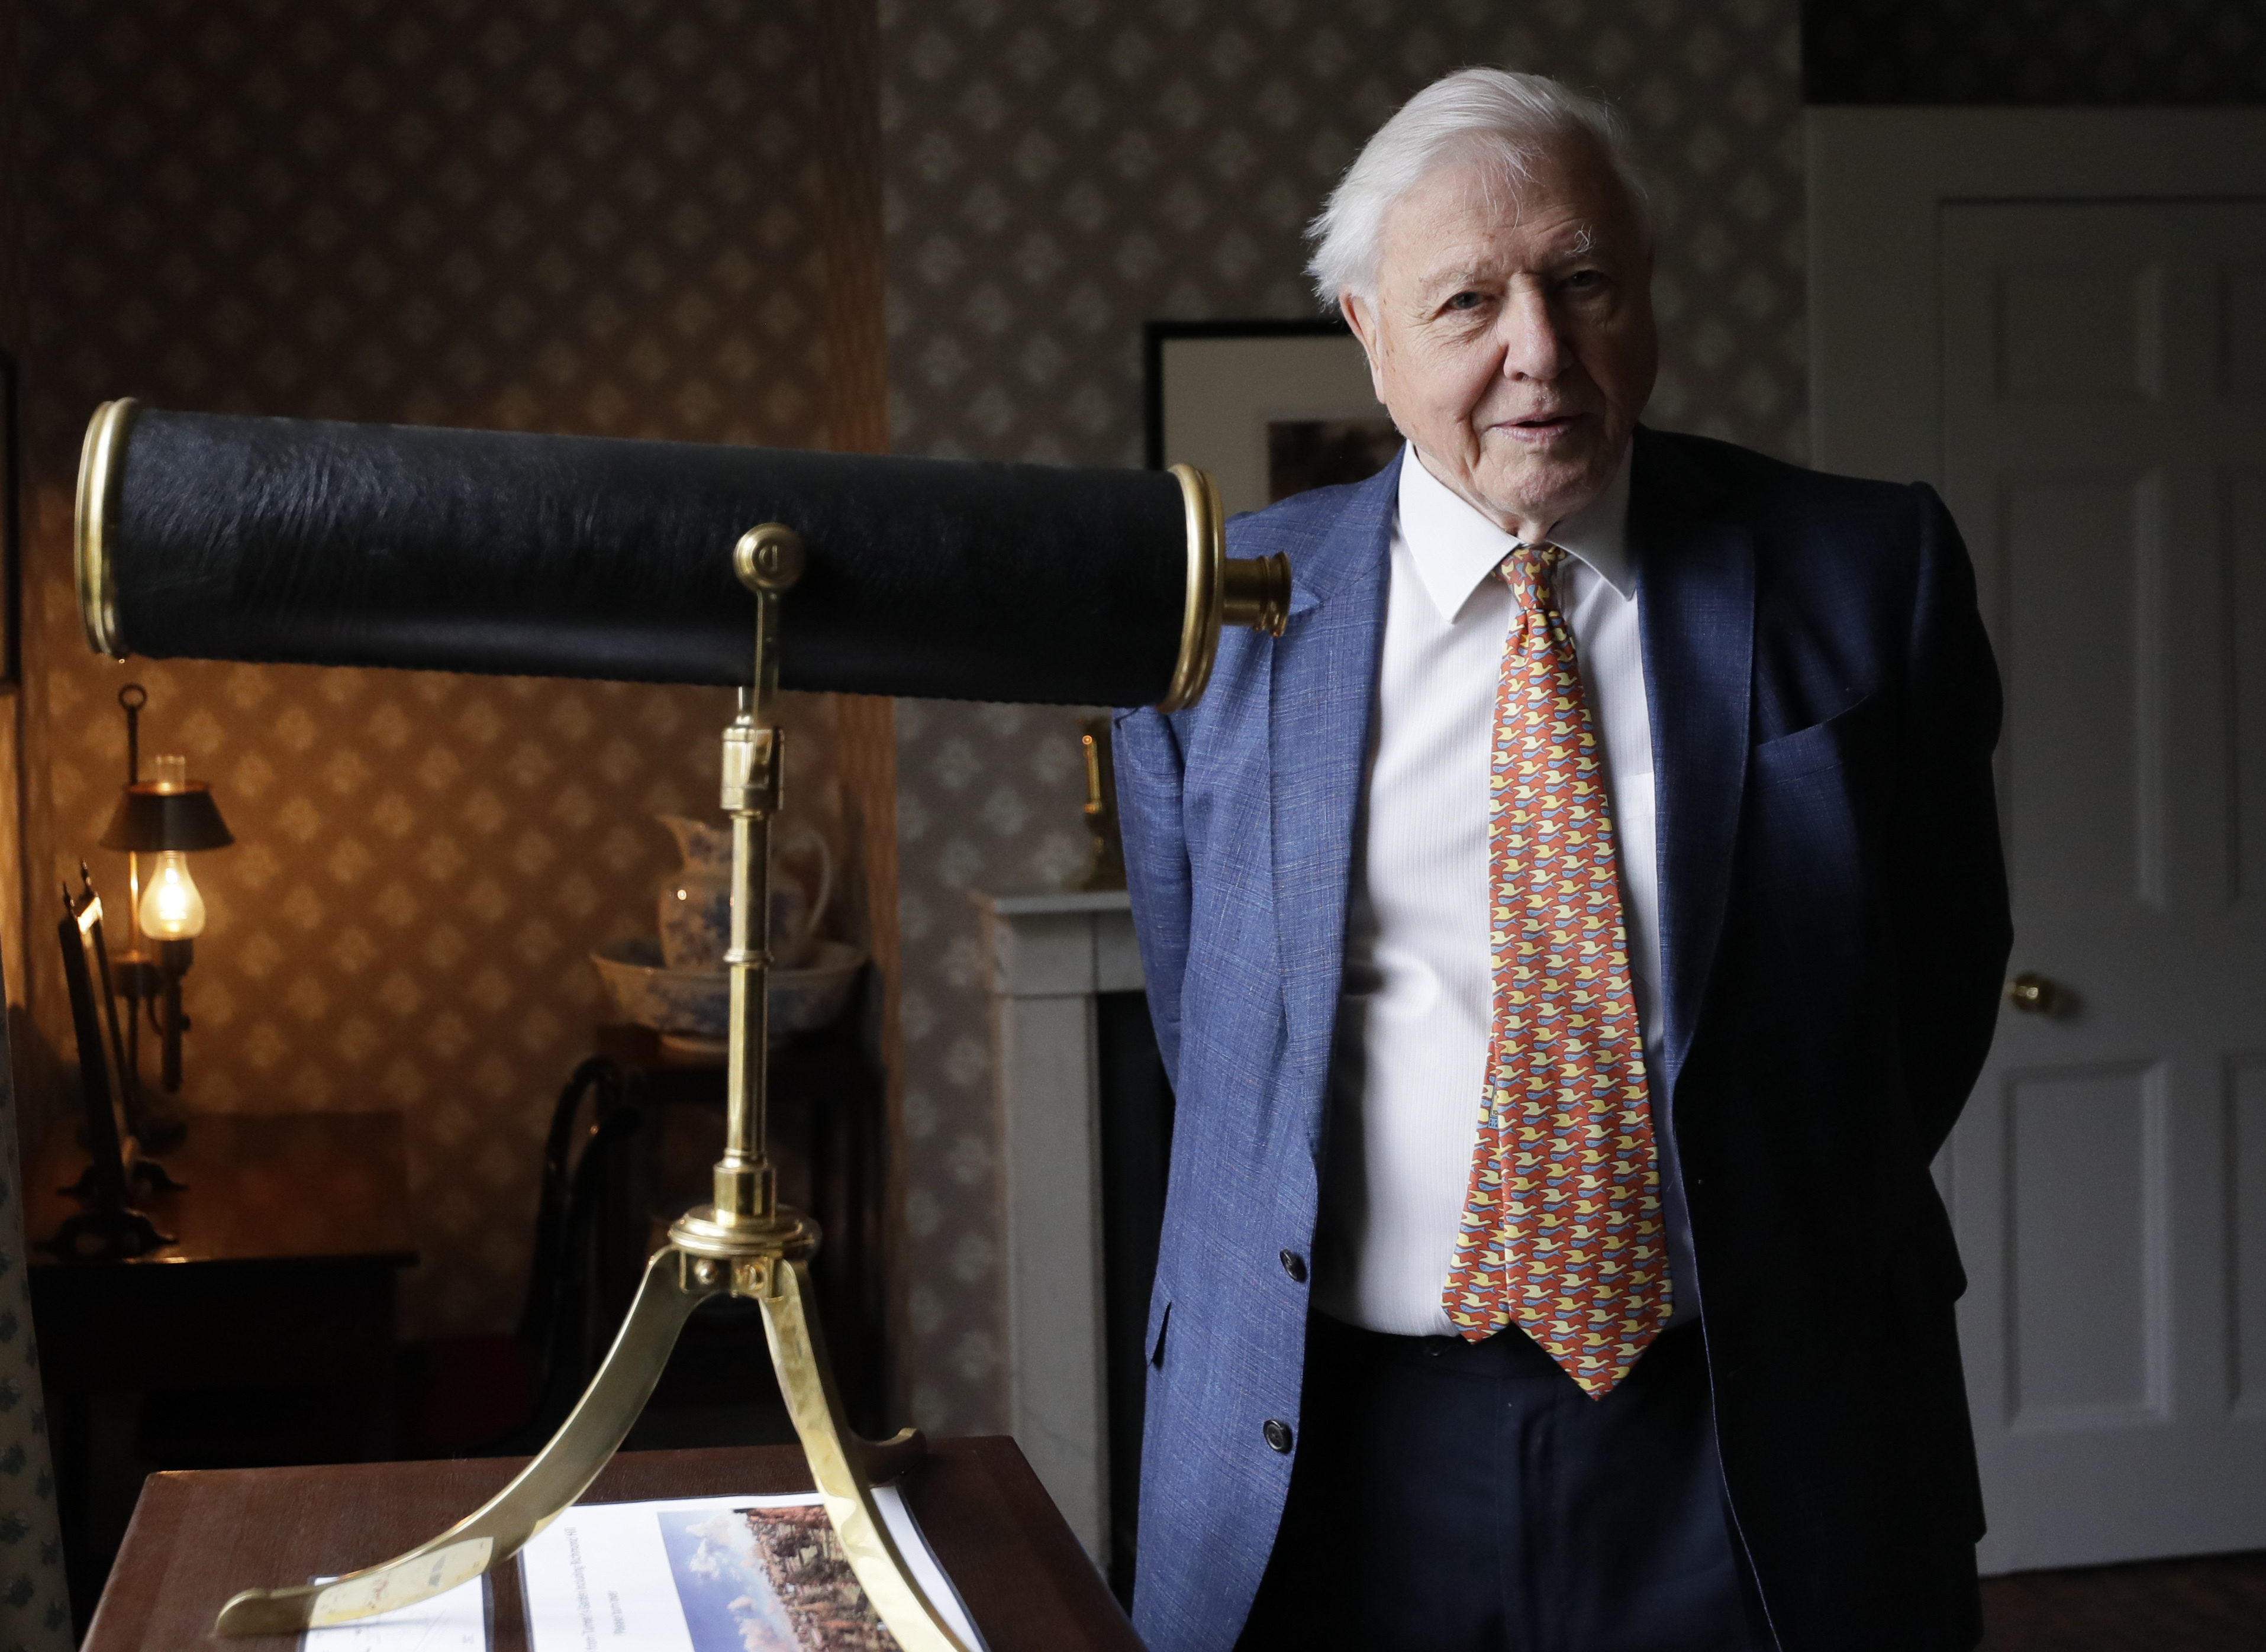 Wildlife presenter David Attenborough visits to open Turner and The Thames exhibition, at the recently restored home of the British landscape artist J.M.W. Turner, in Twickenham, London, Friday, Jan. 10, 2020. This is the first time Turner's original artwork has returned to the house he designed for himself in Twickenham. The exhibition, featuring rarely seen oil studies of the river Thames, will be open to the public from Jan.11 to March 29.